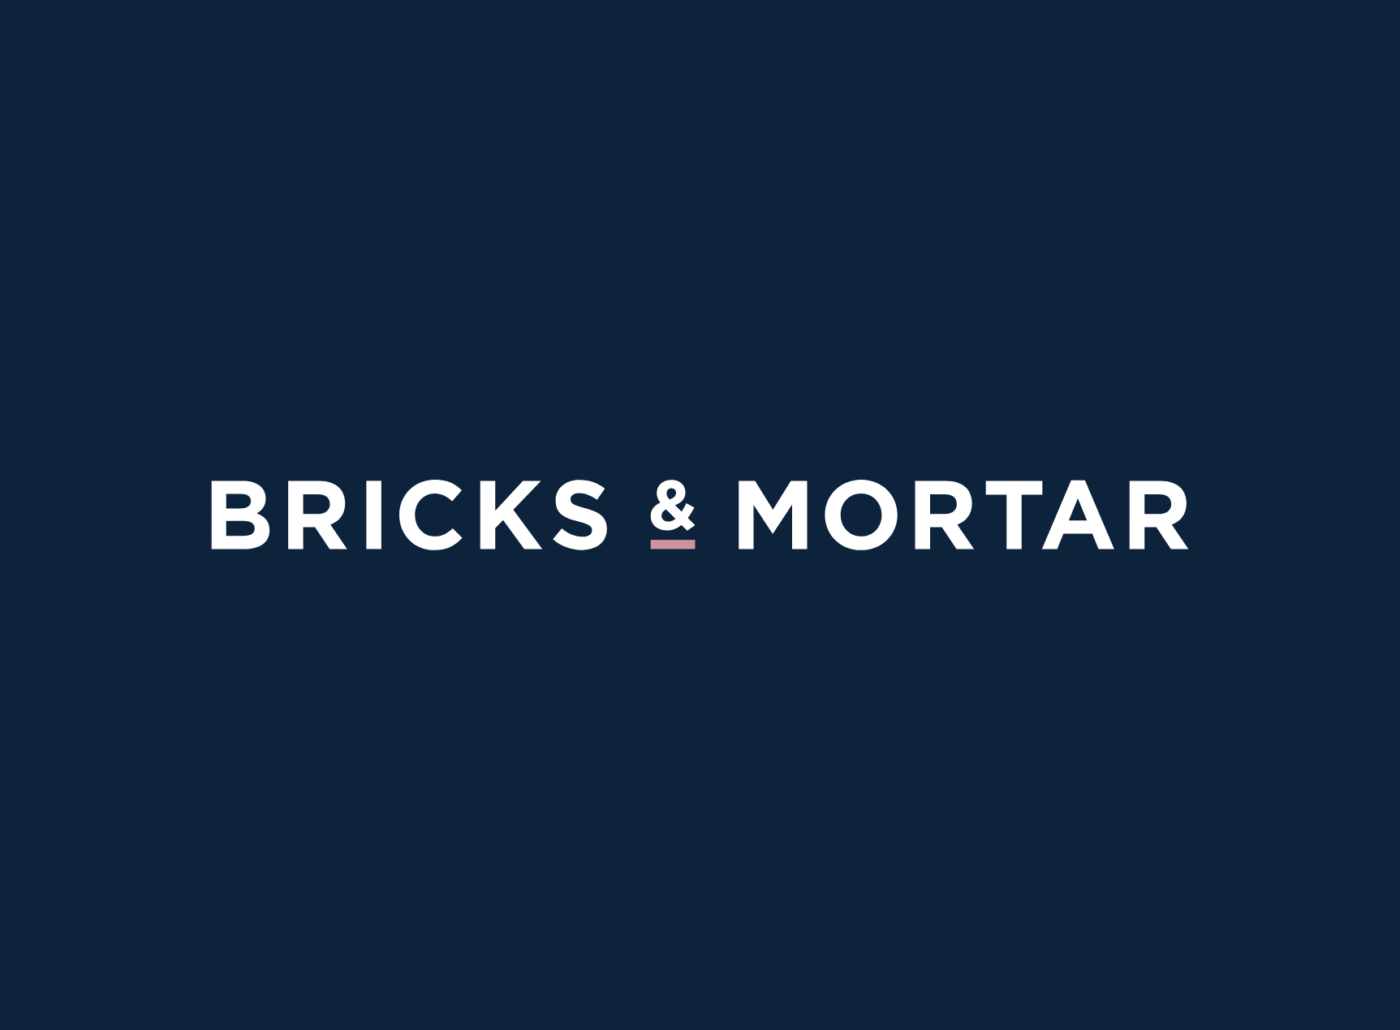 Bricks & Mortar logo by TAC